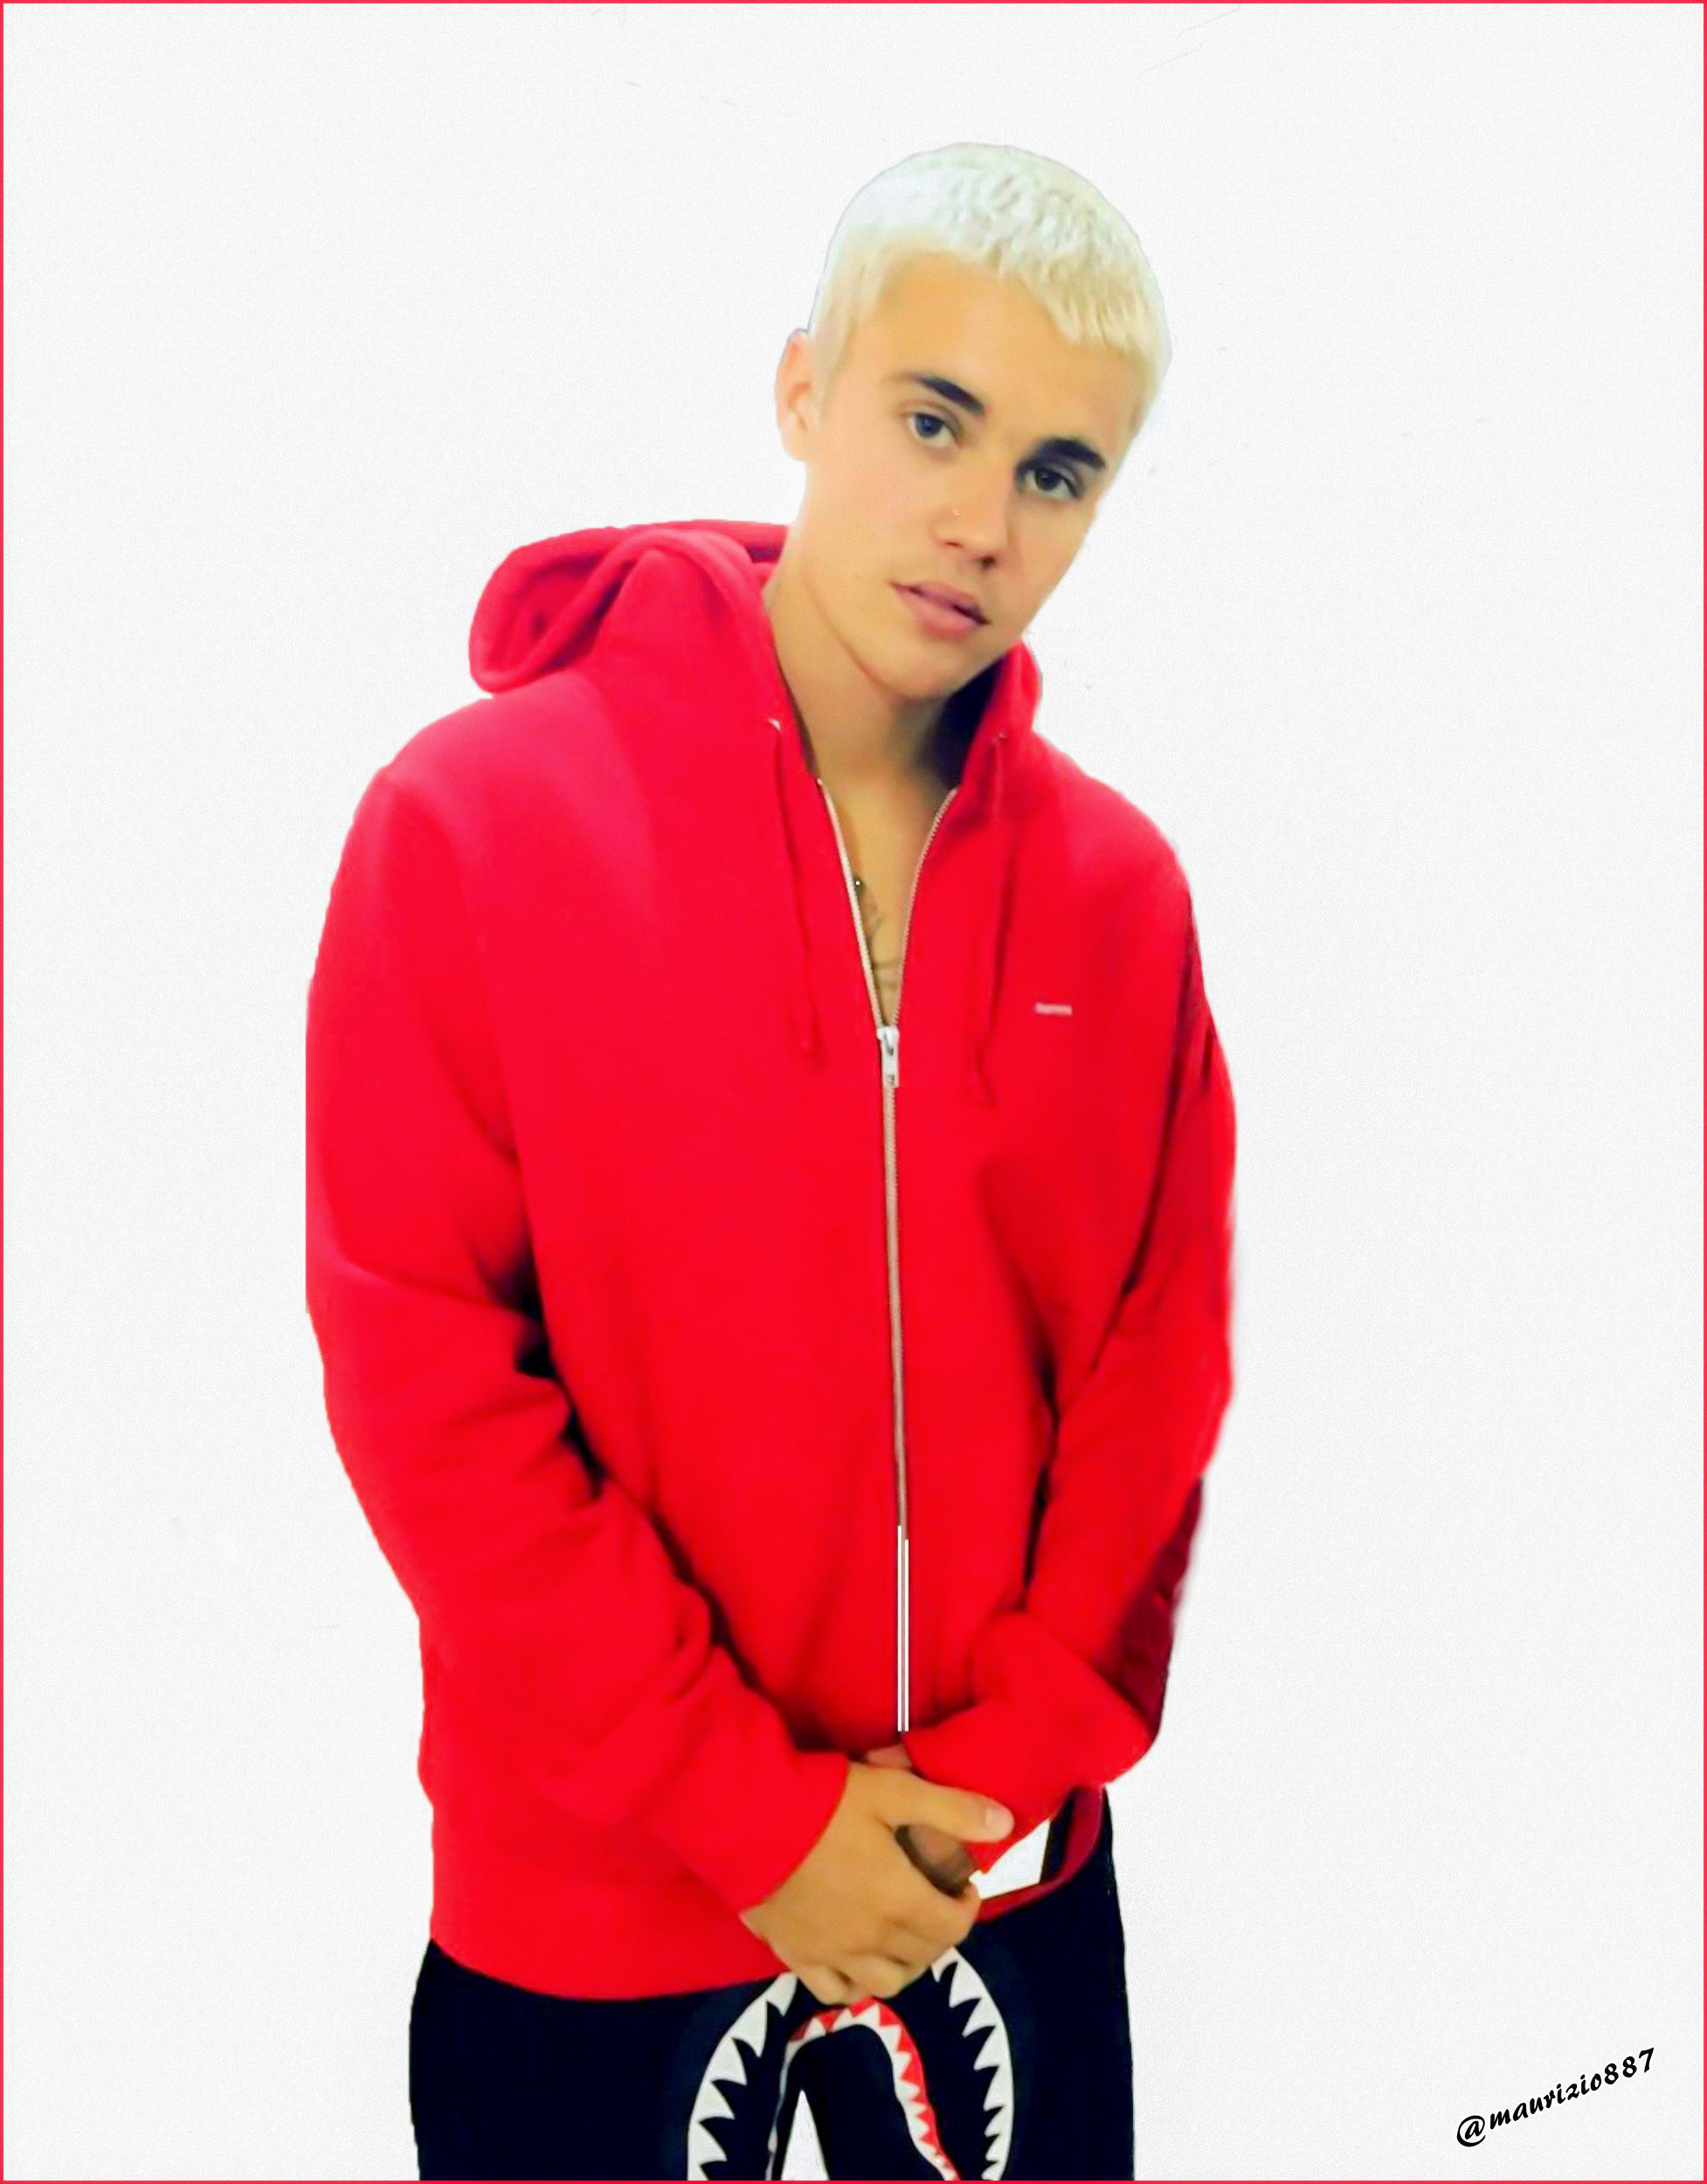 justin bieber #collections 2016 https://twitter.com/maurizio887 http://maurizio887.tumblr.com/ https://plus.google.com/u/0/+smaila242/posts